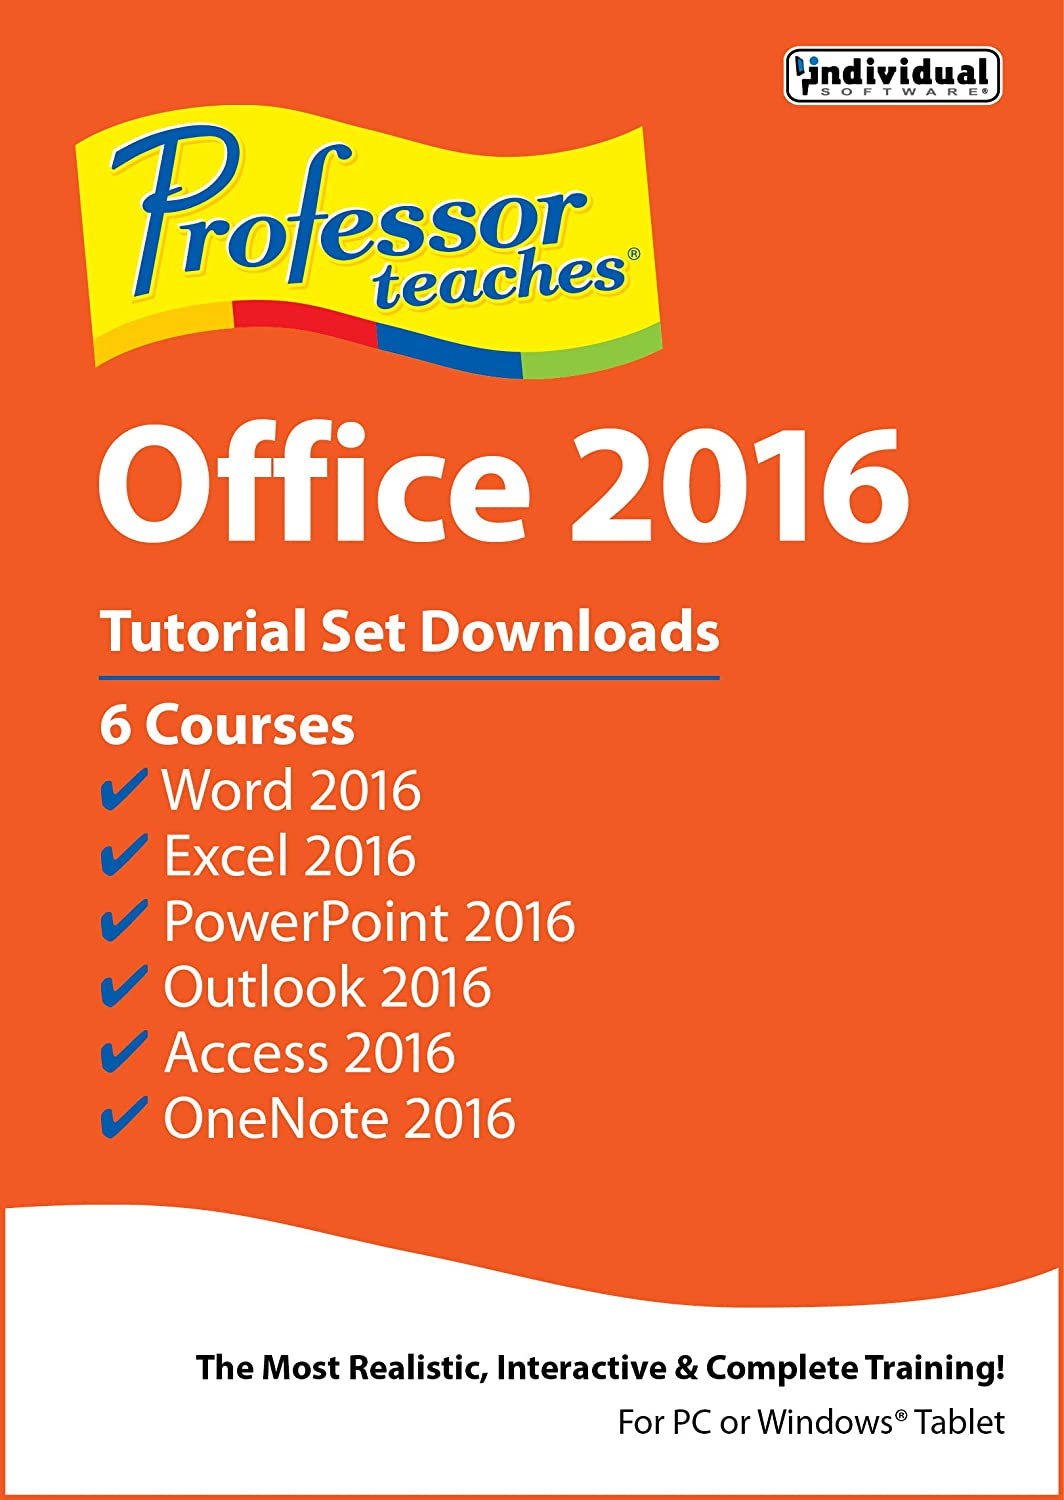 Professor Teaches Office Download 2016 PC Max 59% OFF OFFer